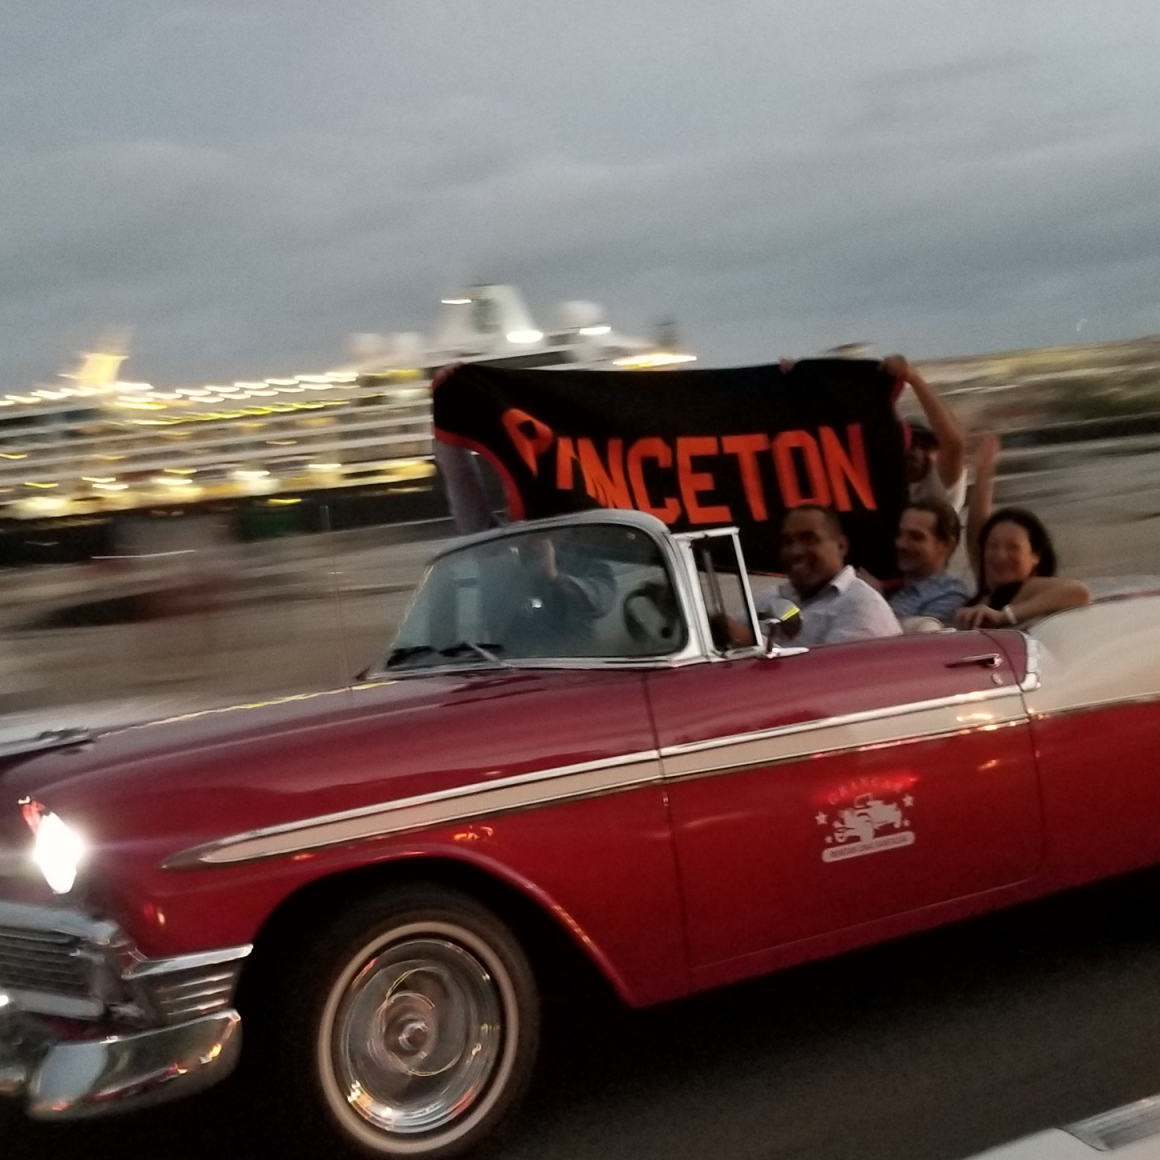 Travelers with Princeton banner driving red vintage car in Cuba